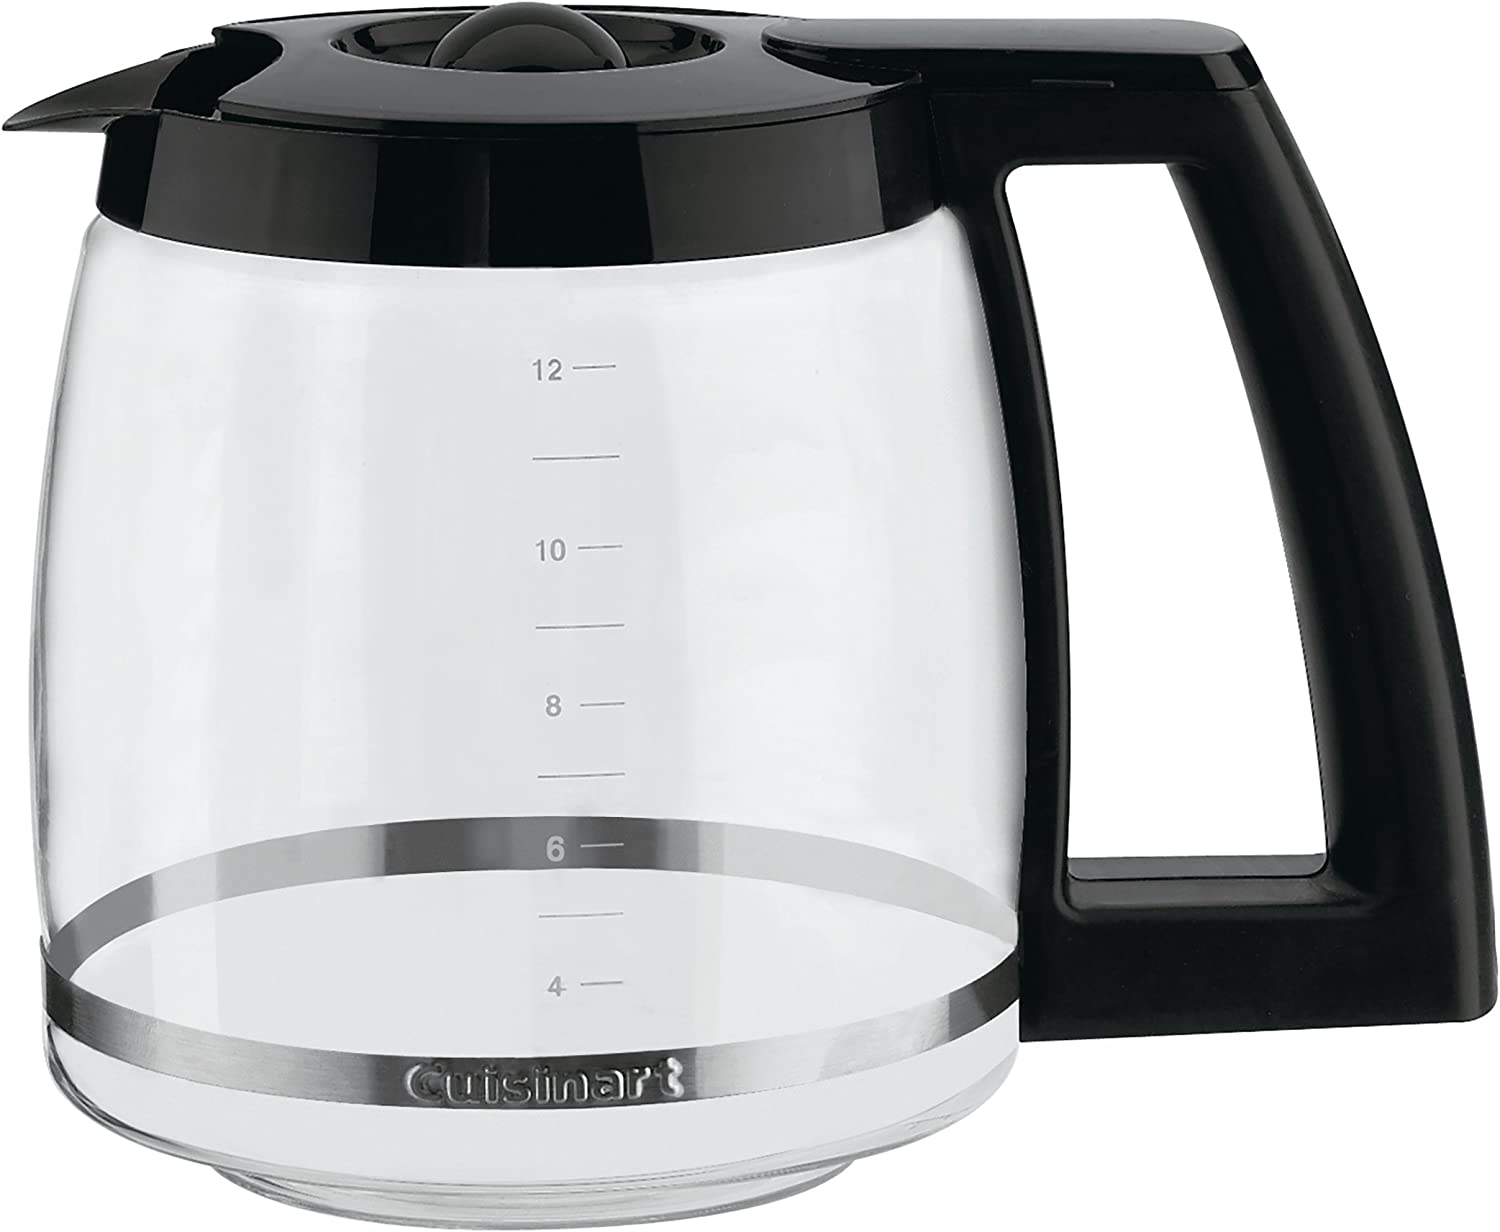 Cuisinart Dcc-1200Prc 12-Cup Replacement Glass Carafe, Black, 12 Cup